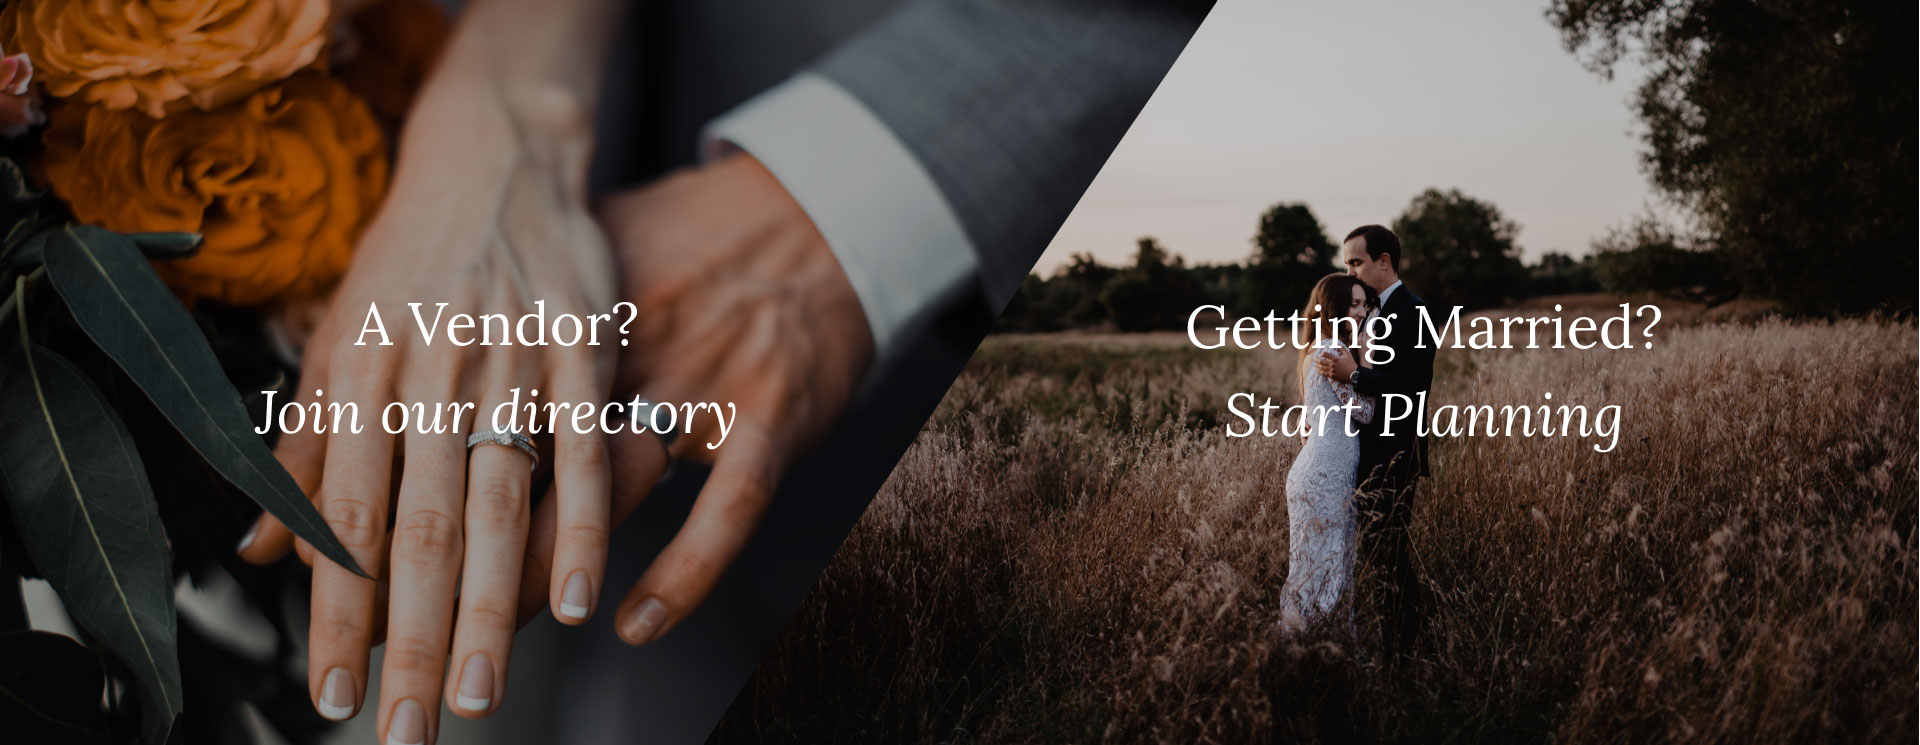 A Vendor? join our directory. Getting married? start planning.